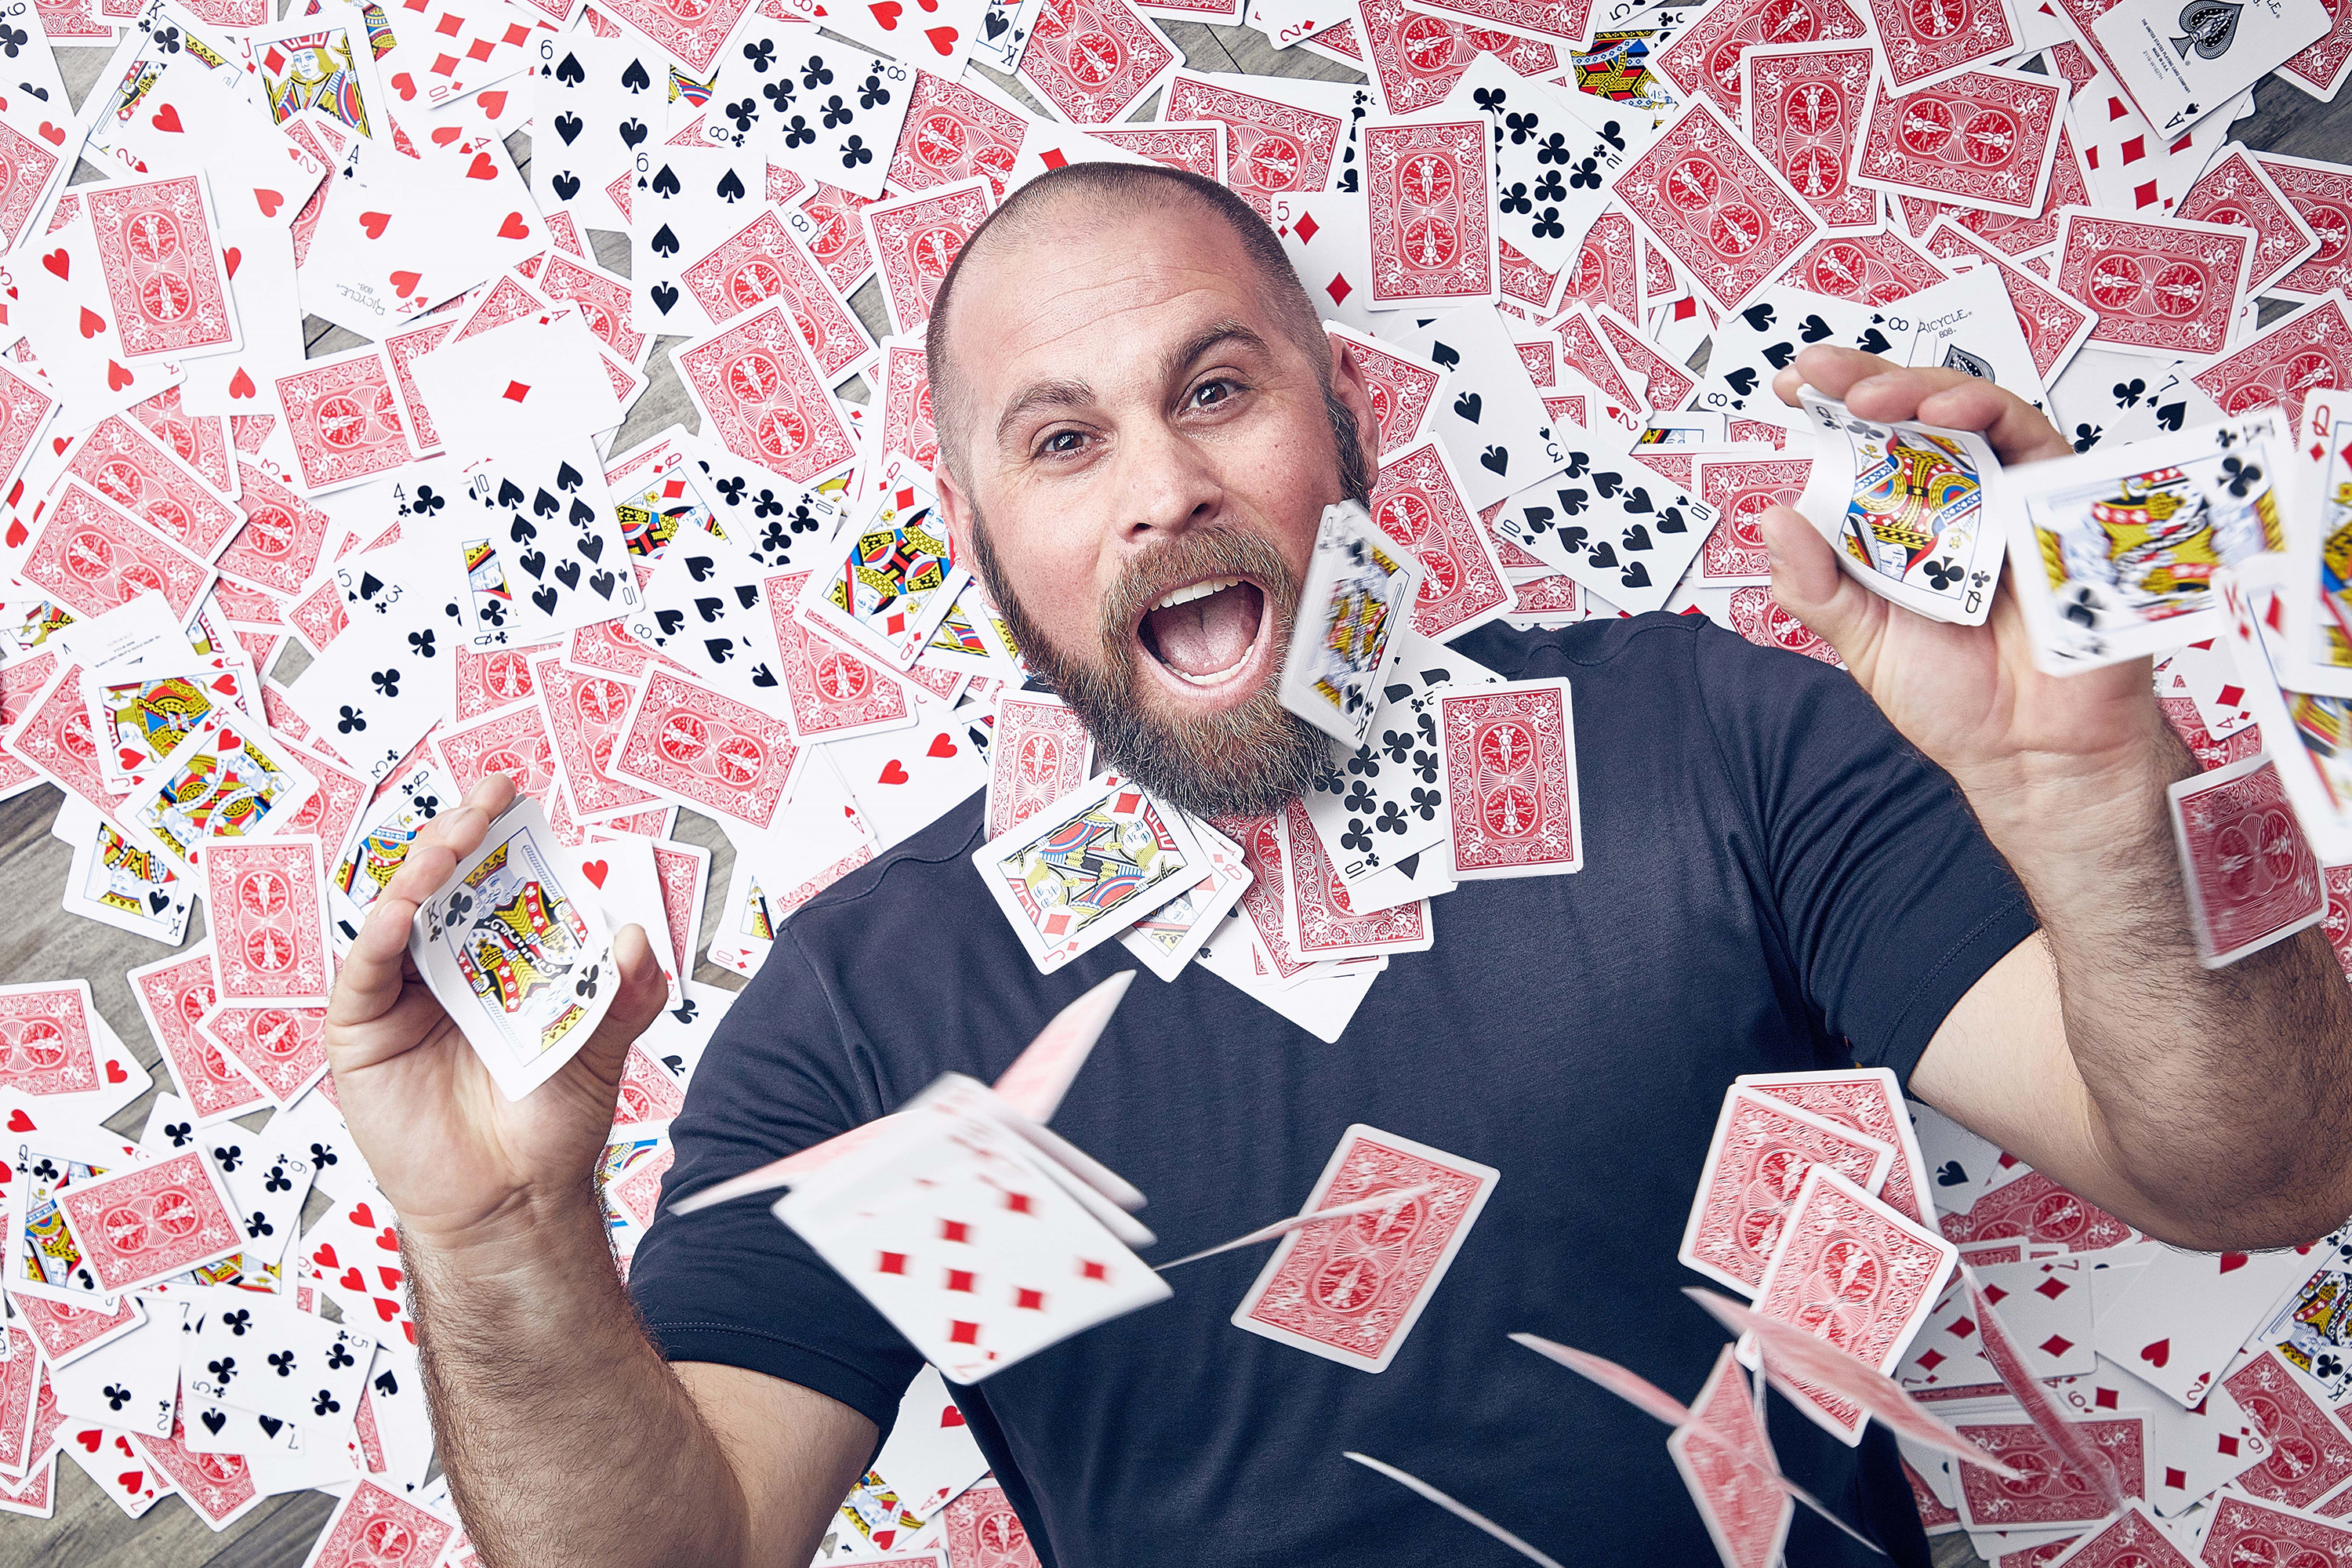 Magician Jon Dorenbos surrounded by playing cards